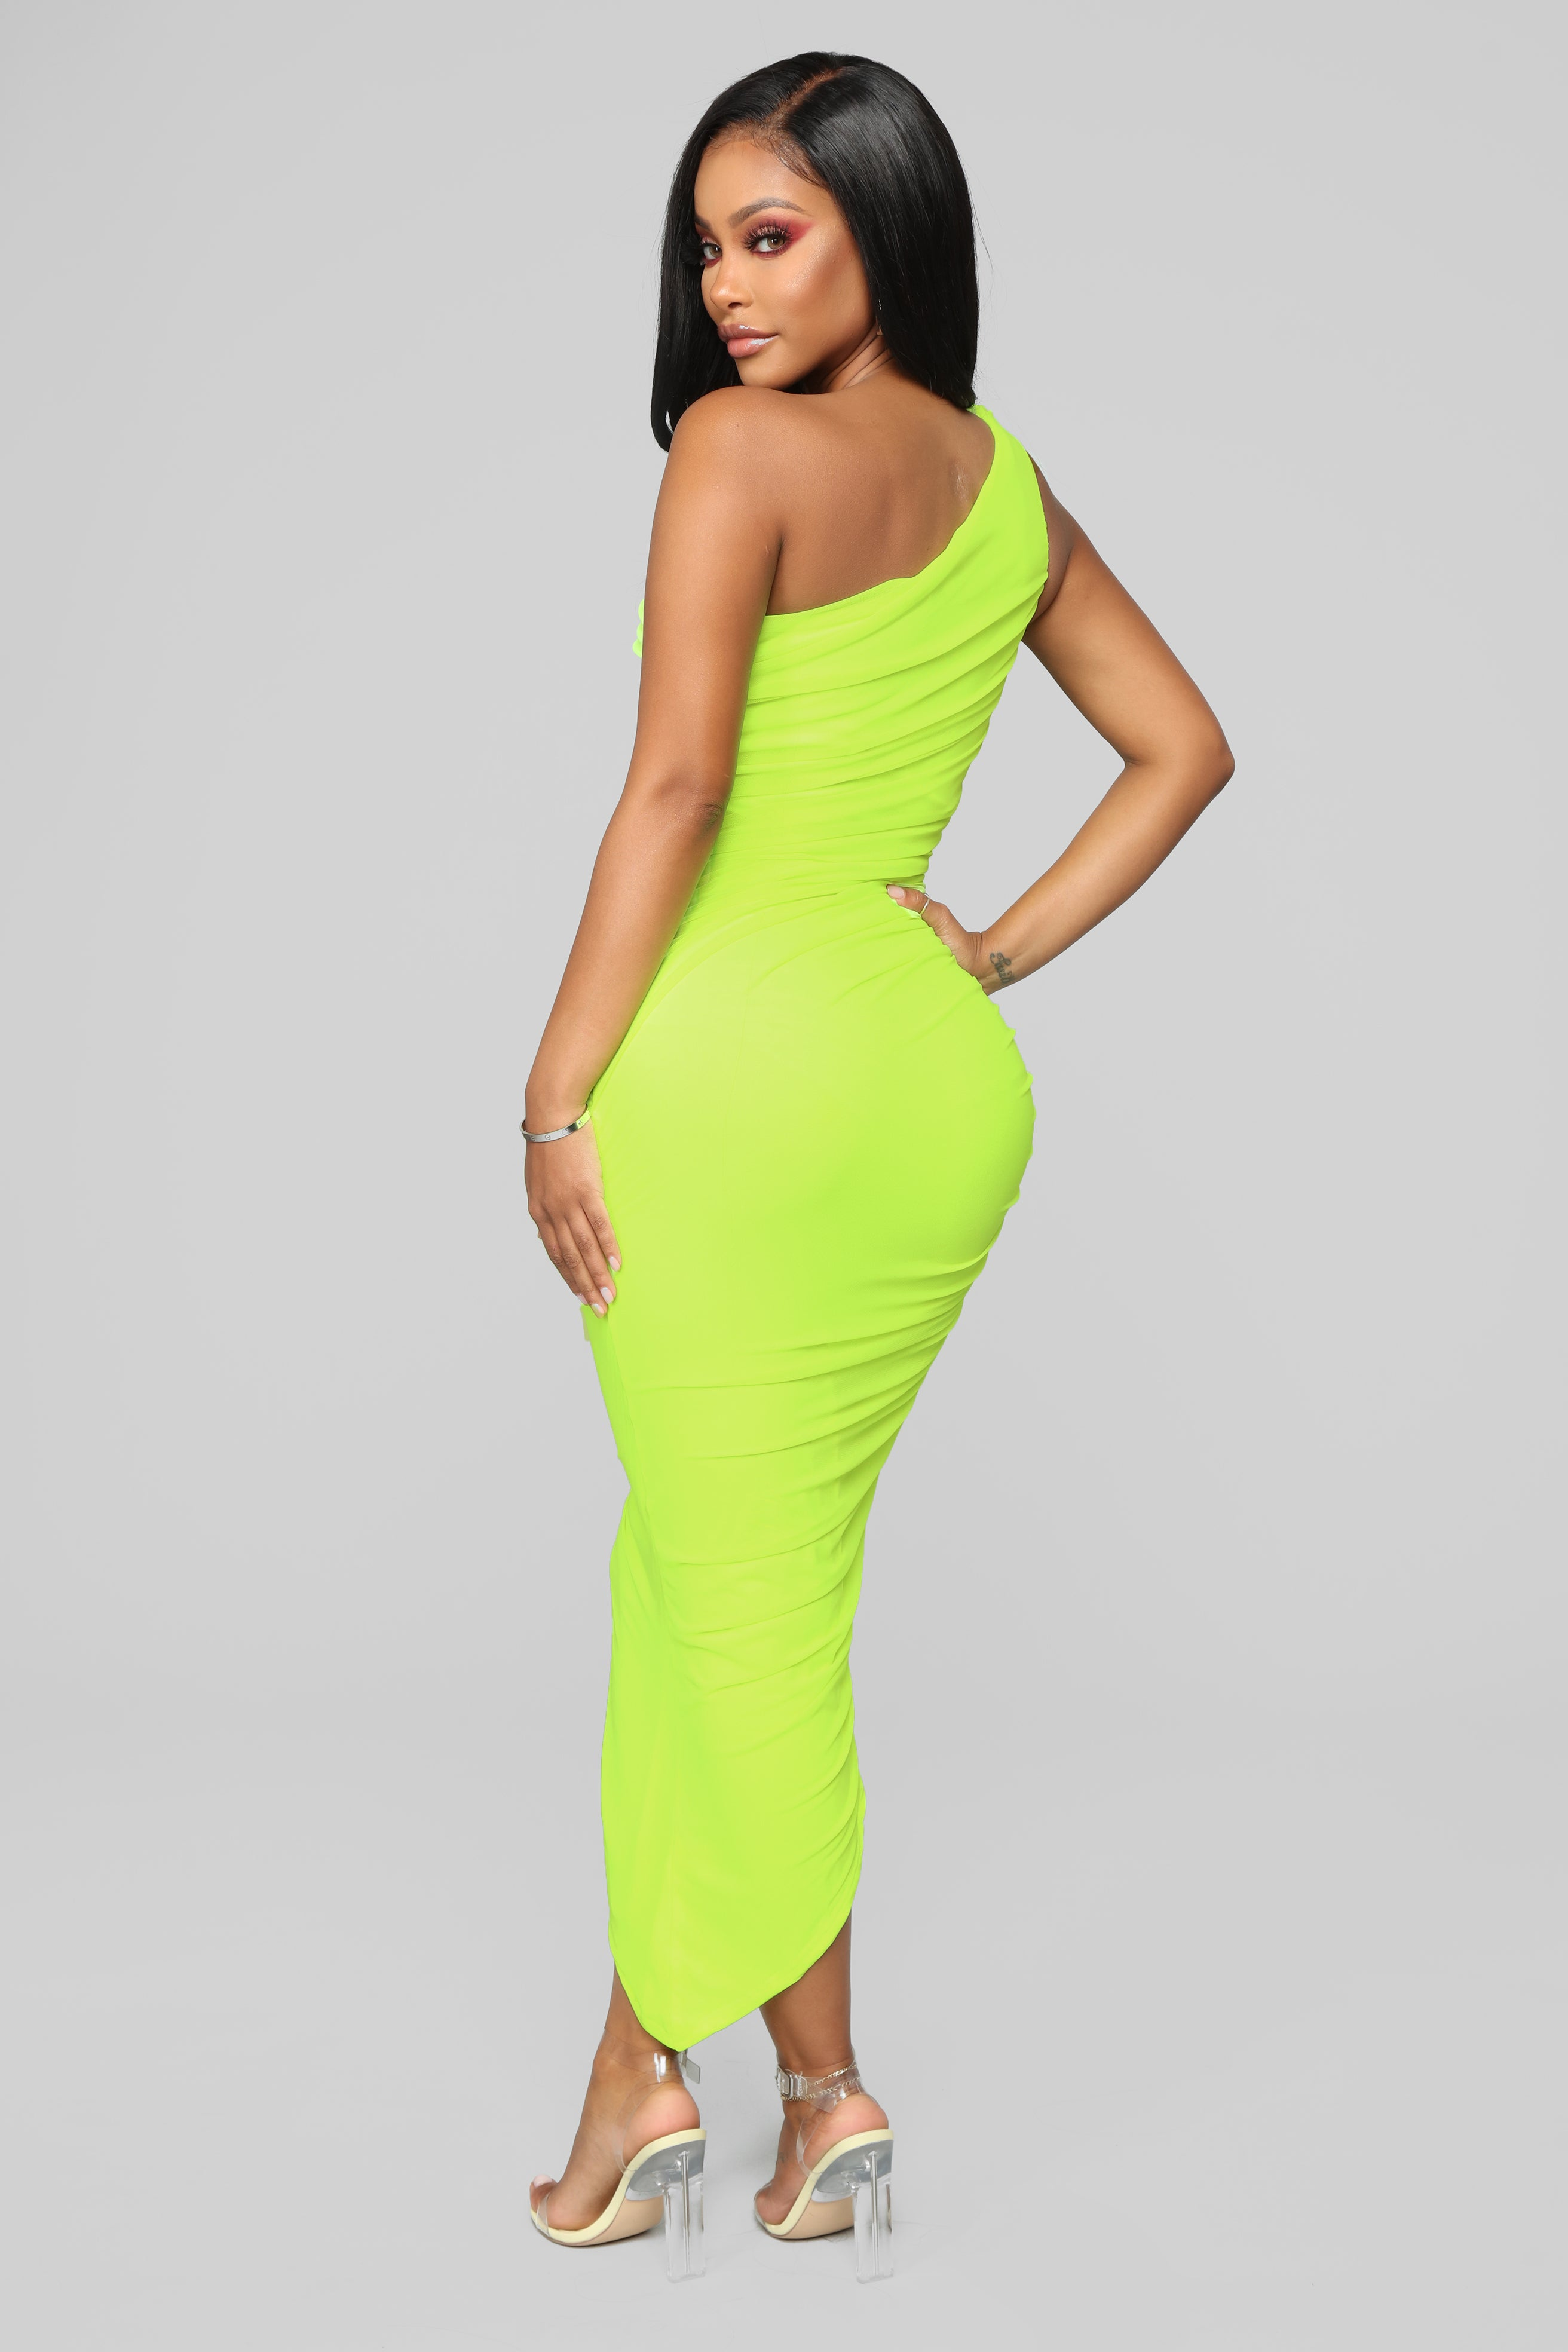 08566222ace1 The Center Of Attention One Shoulder Dress - Neon Yellow